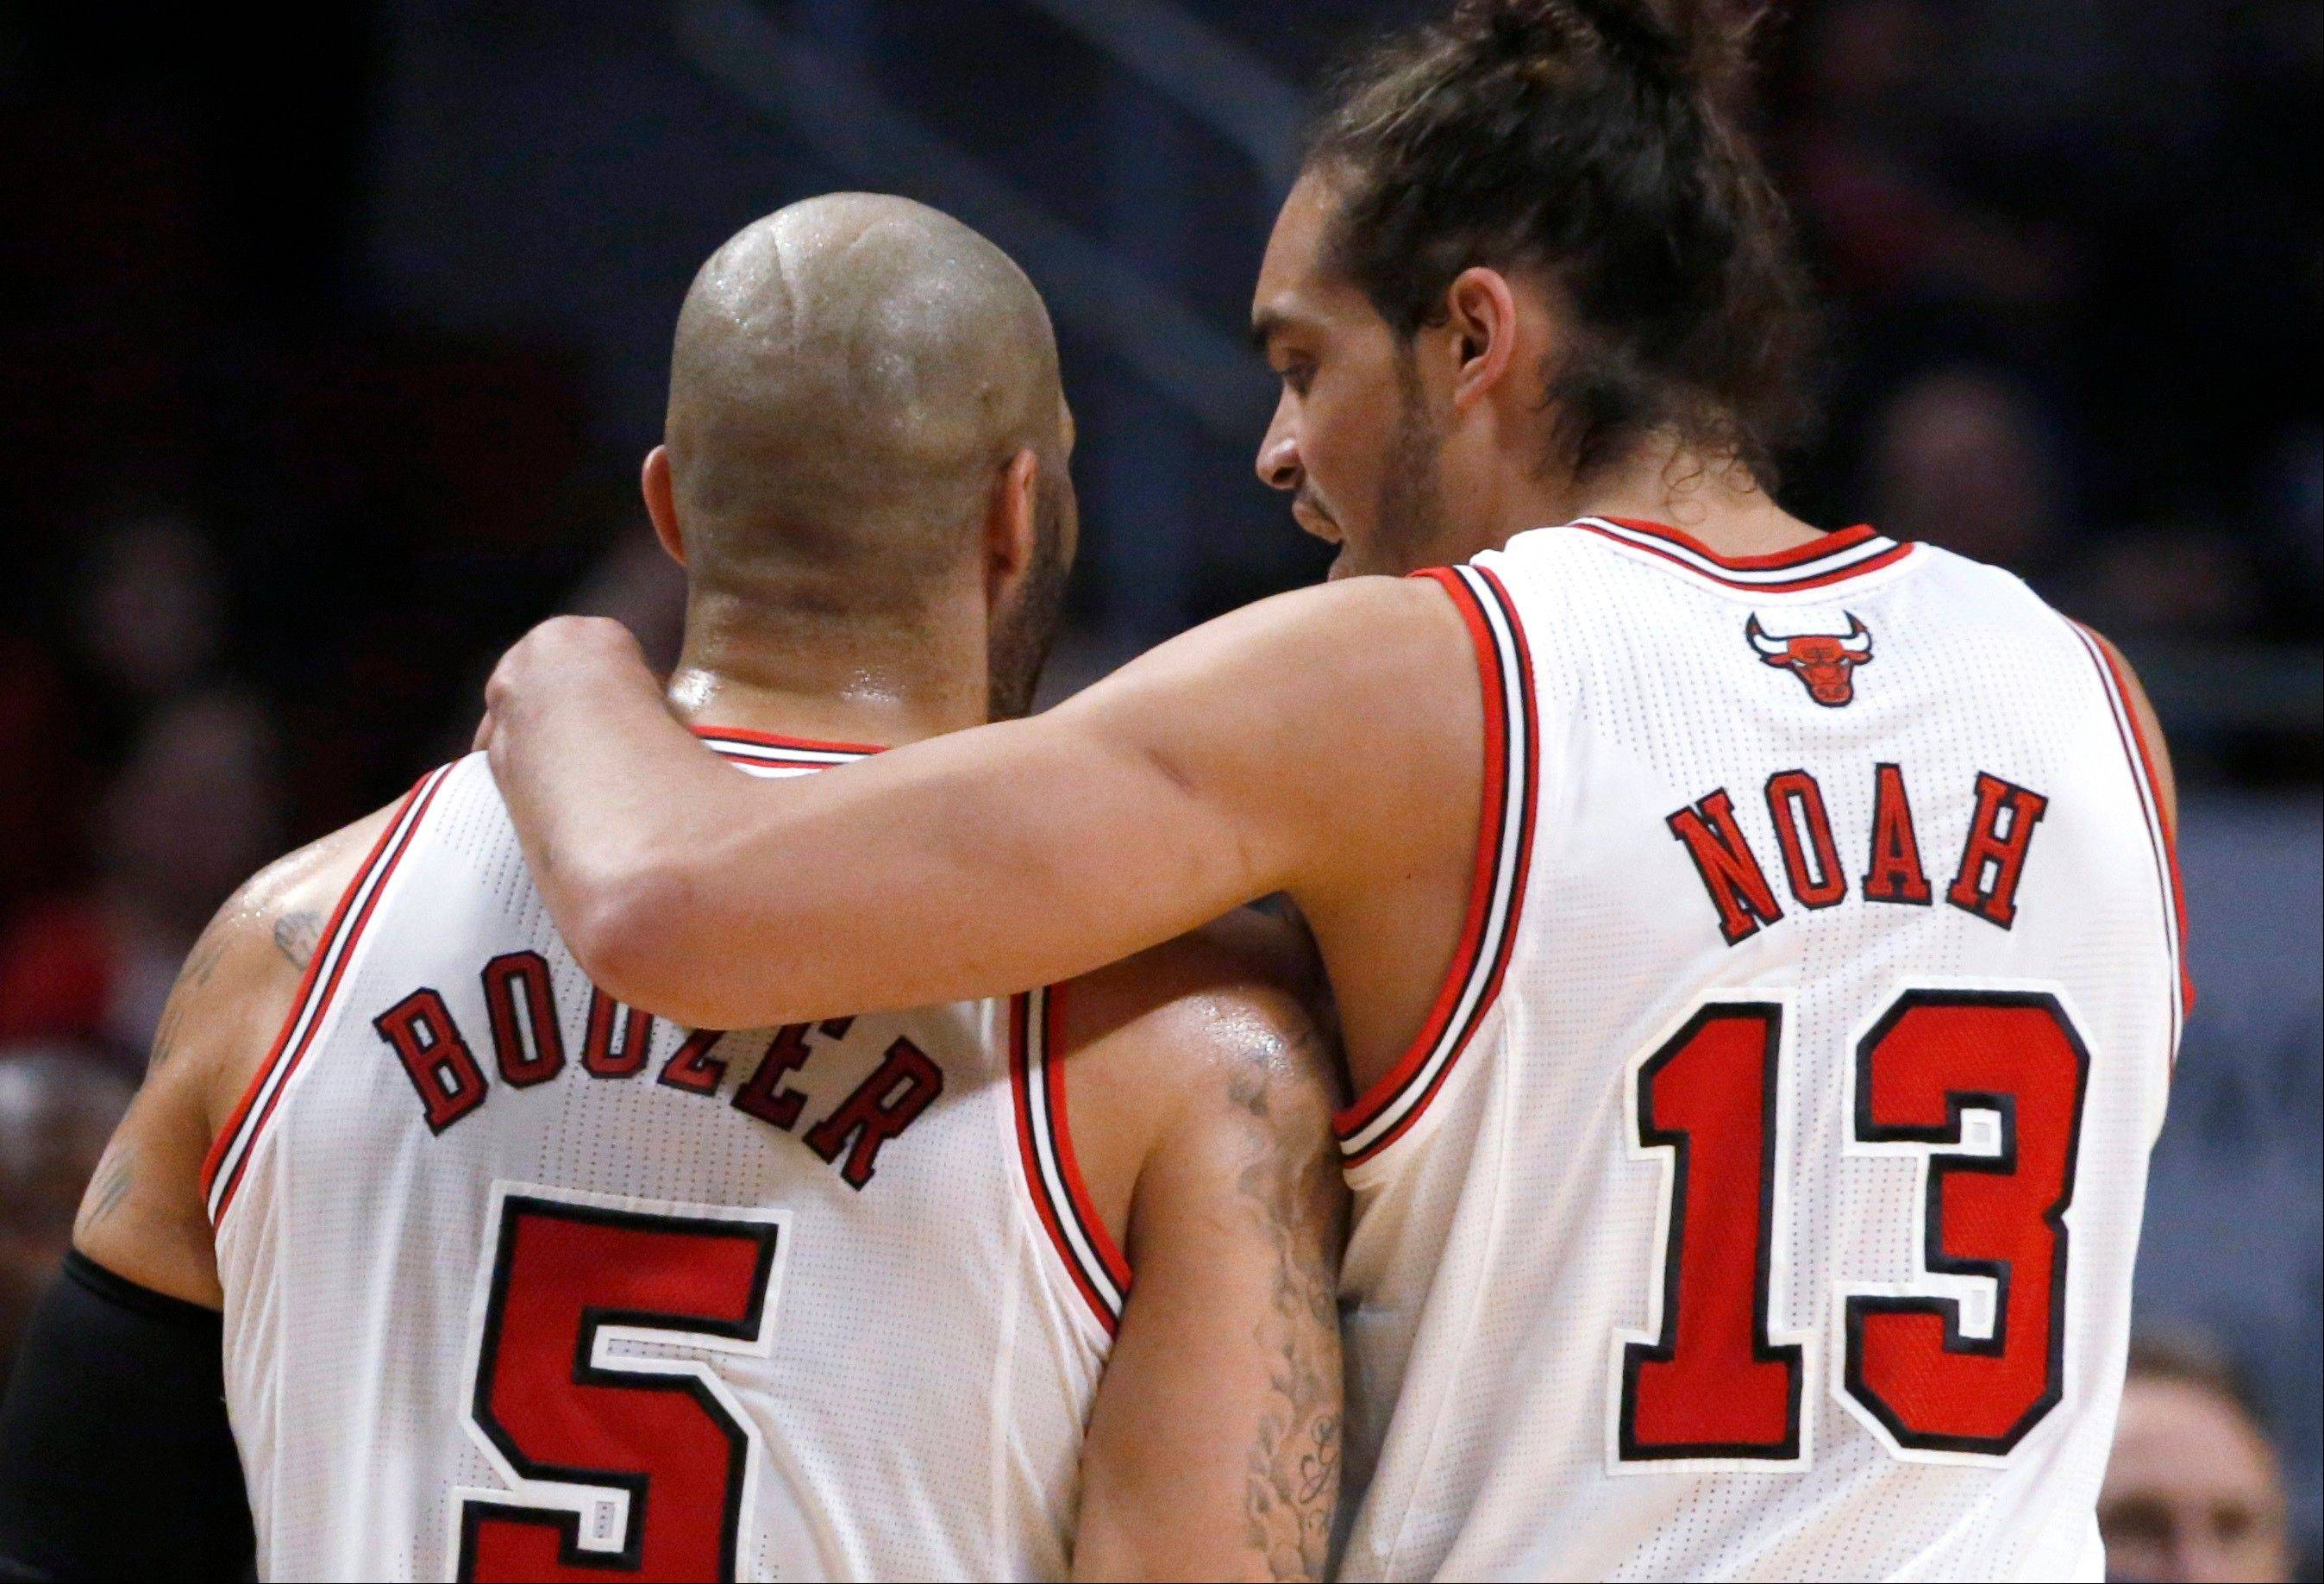 Bulls forward Carlos Boozer and center Joakim Noah talk during a break in the first half of an NBA basketball game against the Cleveland Cavaliers on Monday, Jan. 7, 2013, in Chicago.